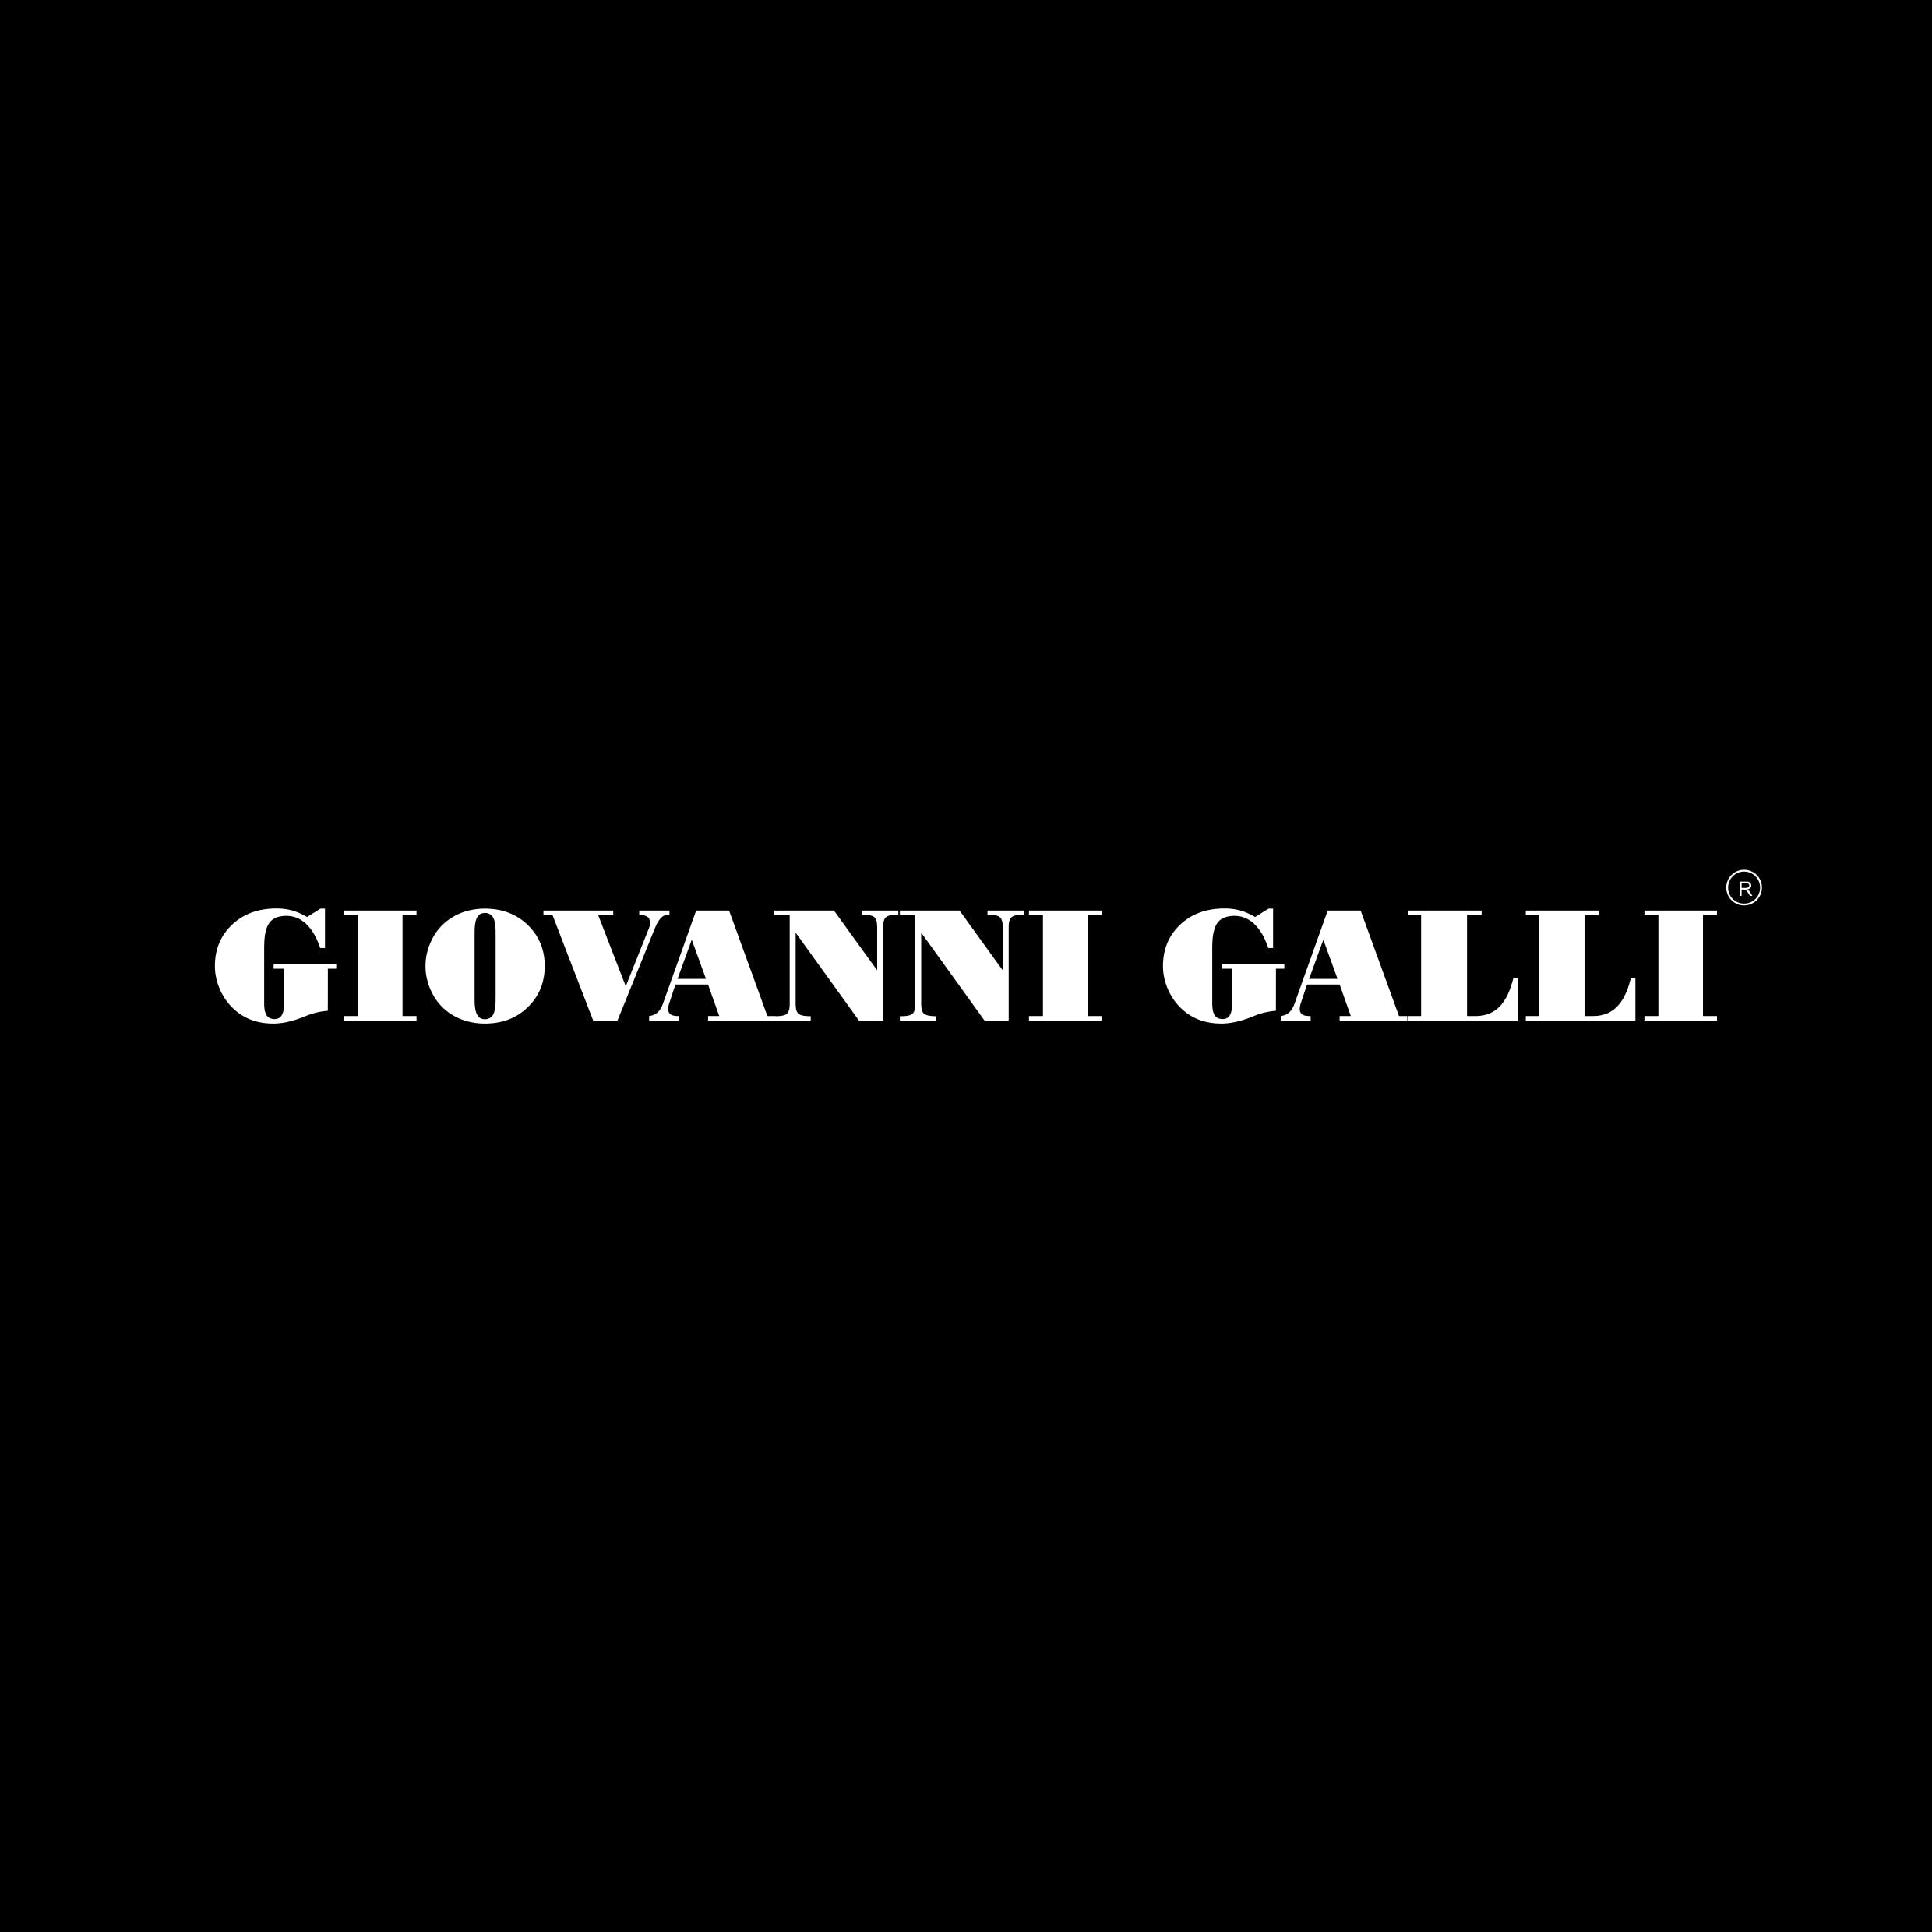 Giovanni Galli